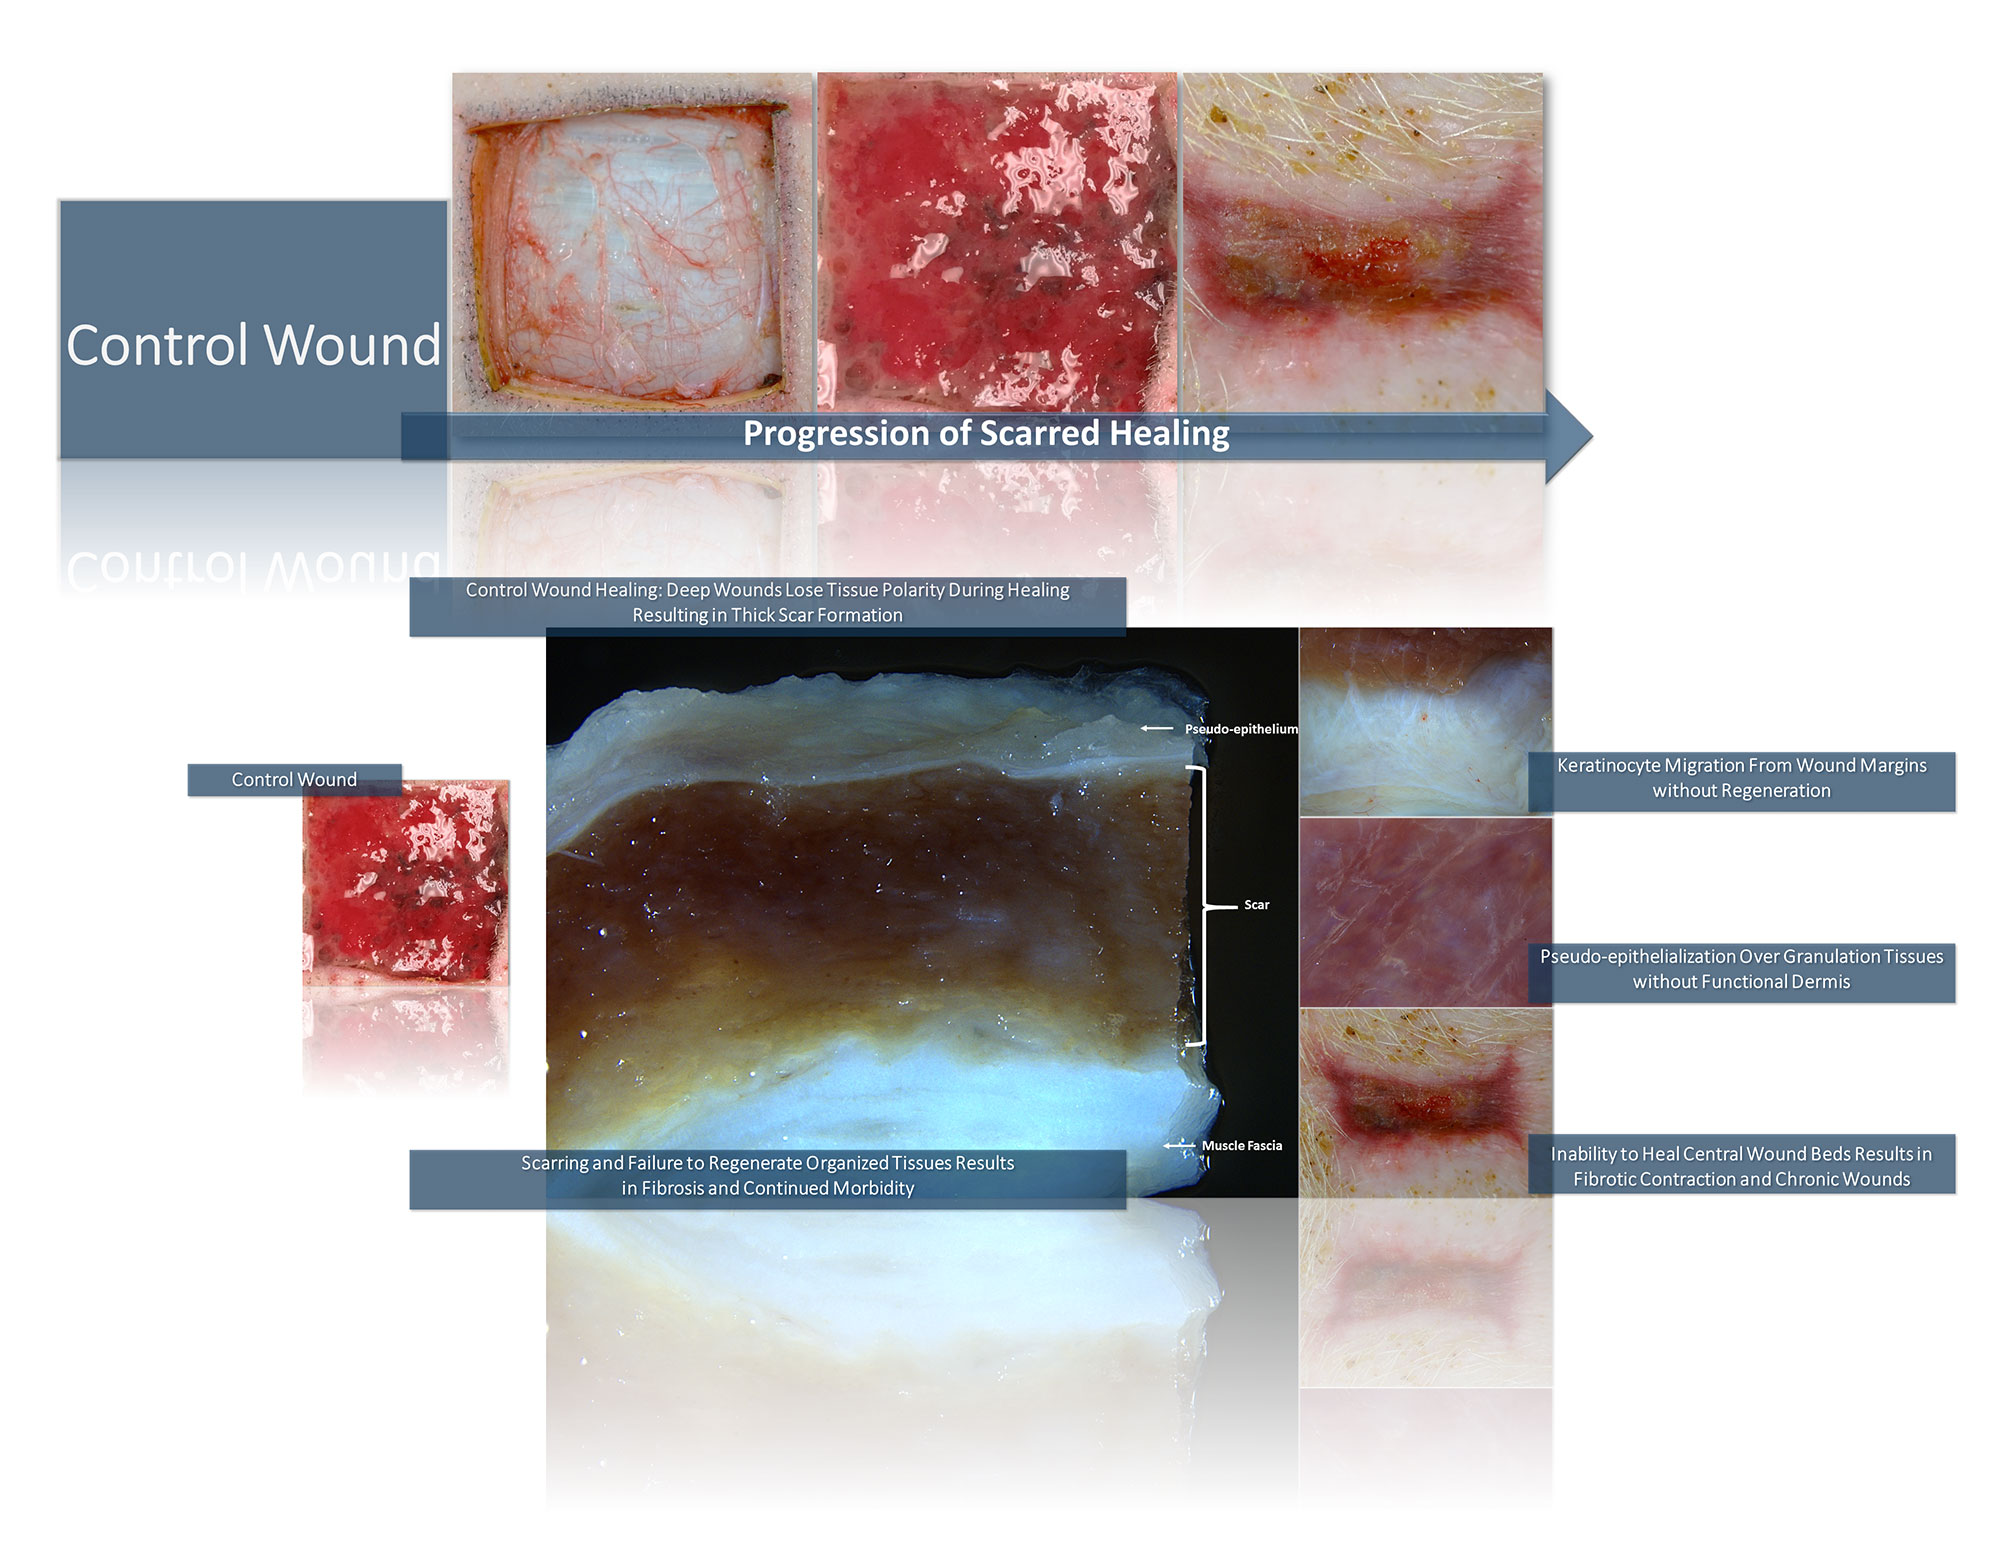 Control Wound Results in Contracted Scar